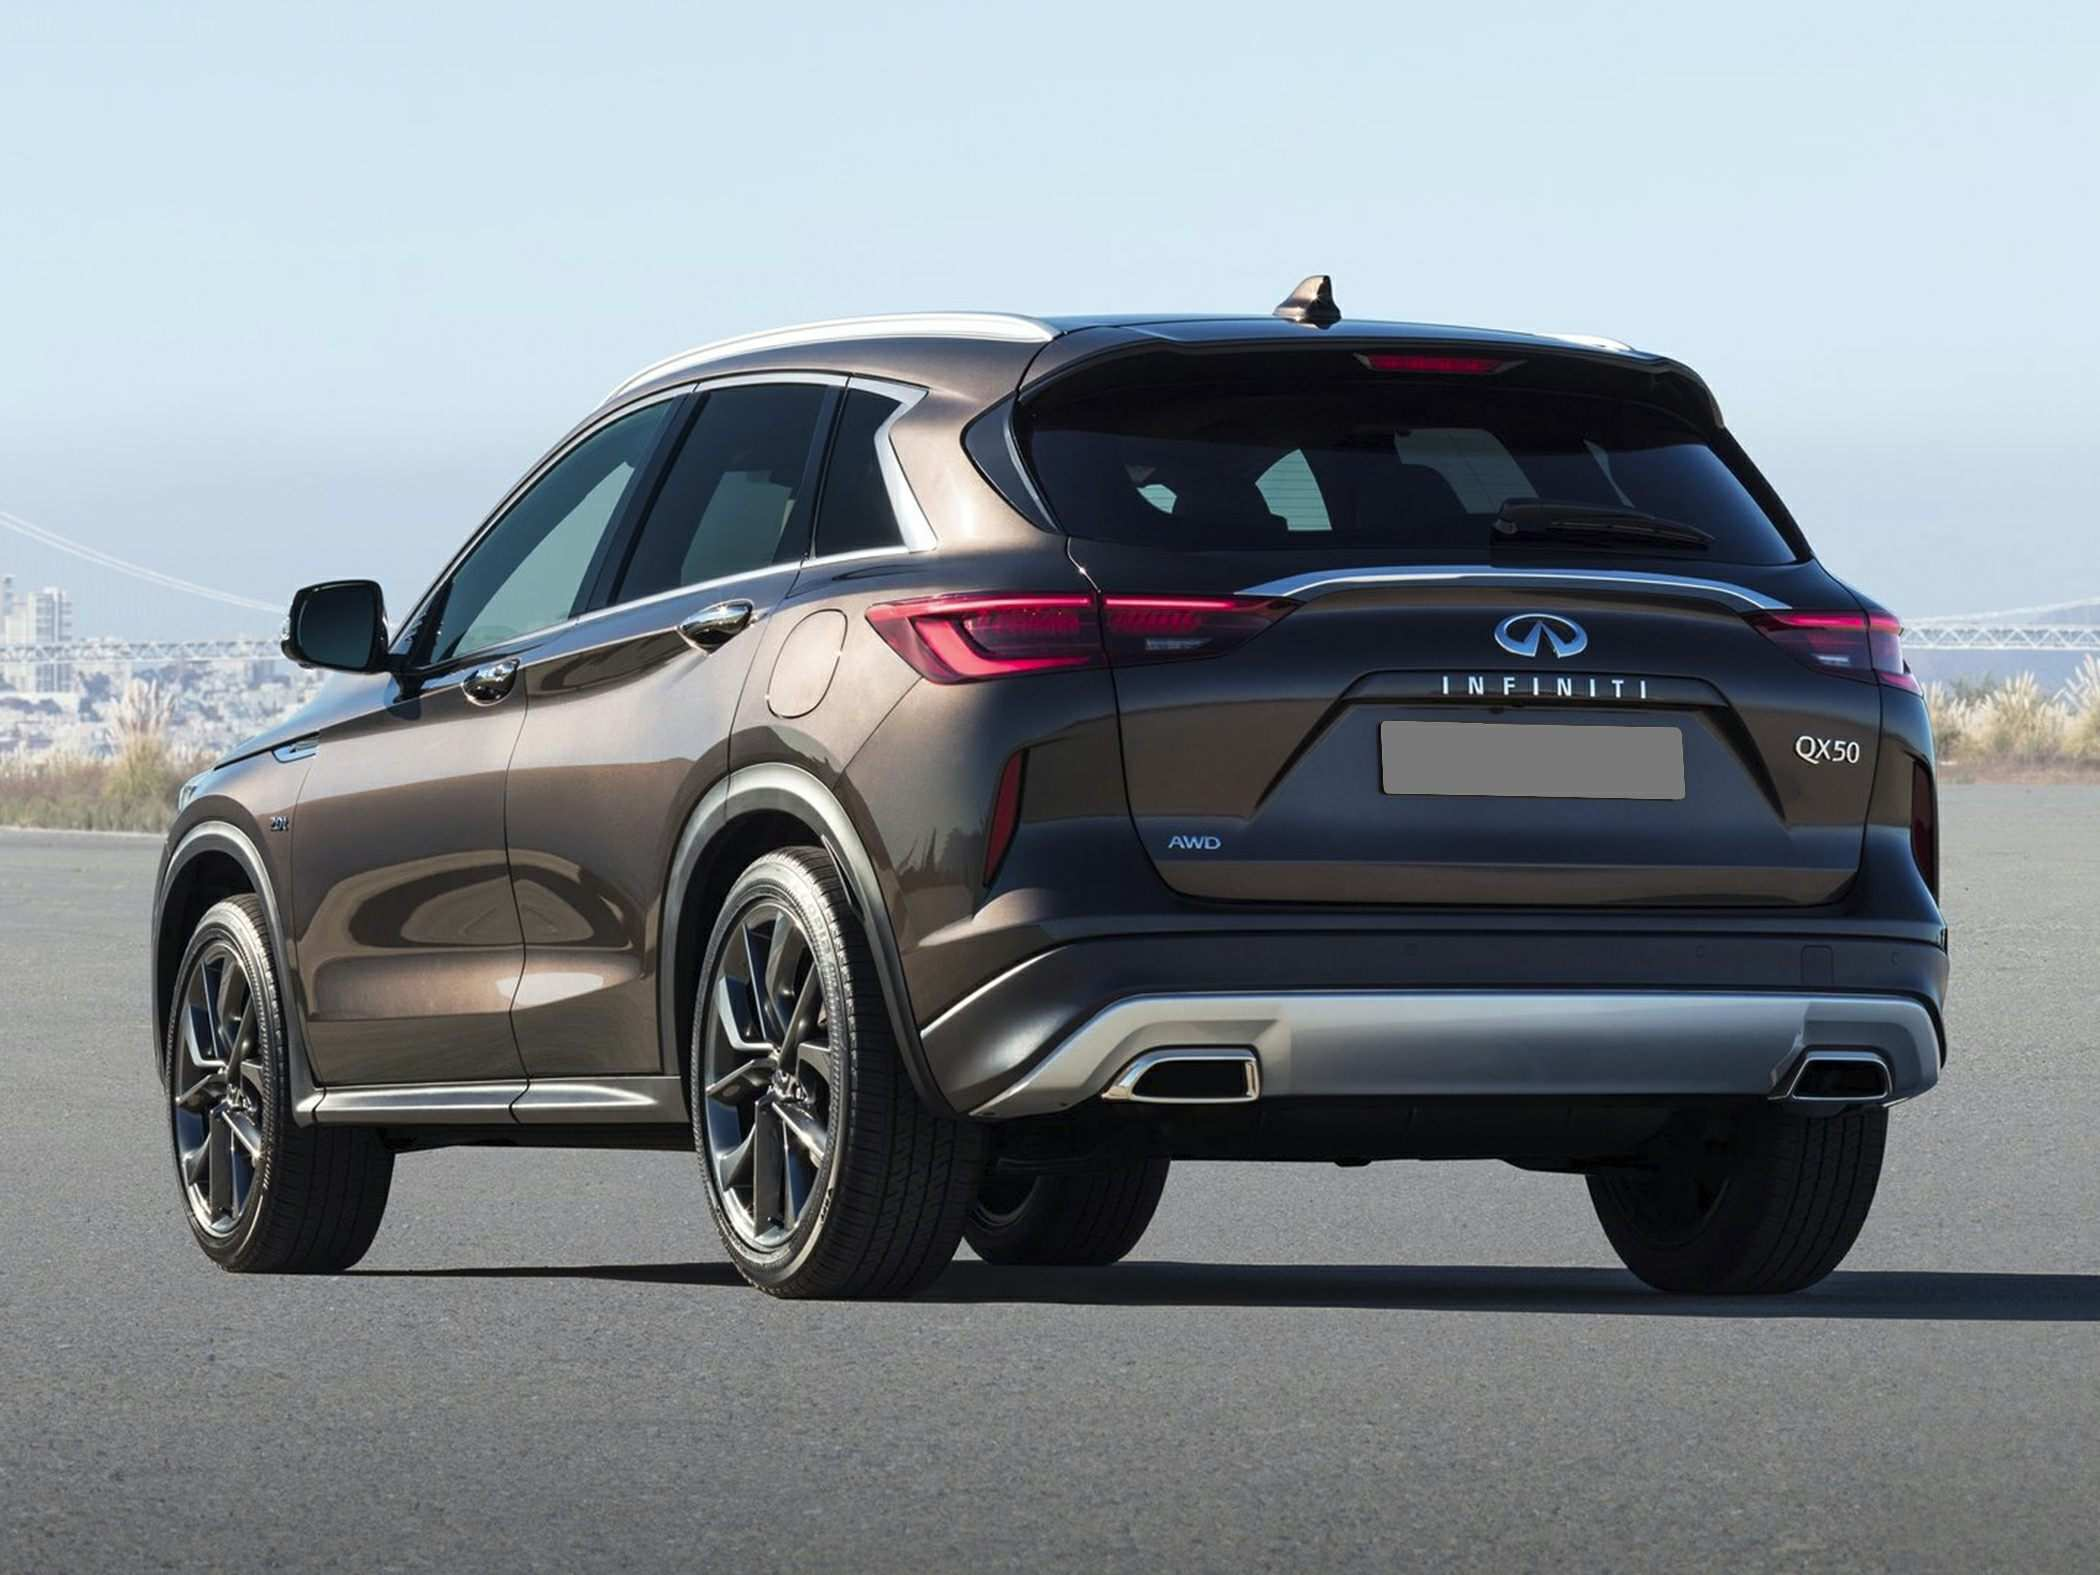 81 The New 2019 Infiniti Qx50 New Review Style for New 2019 Infiniti Qx50 New Review